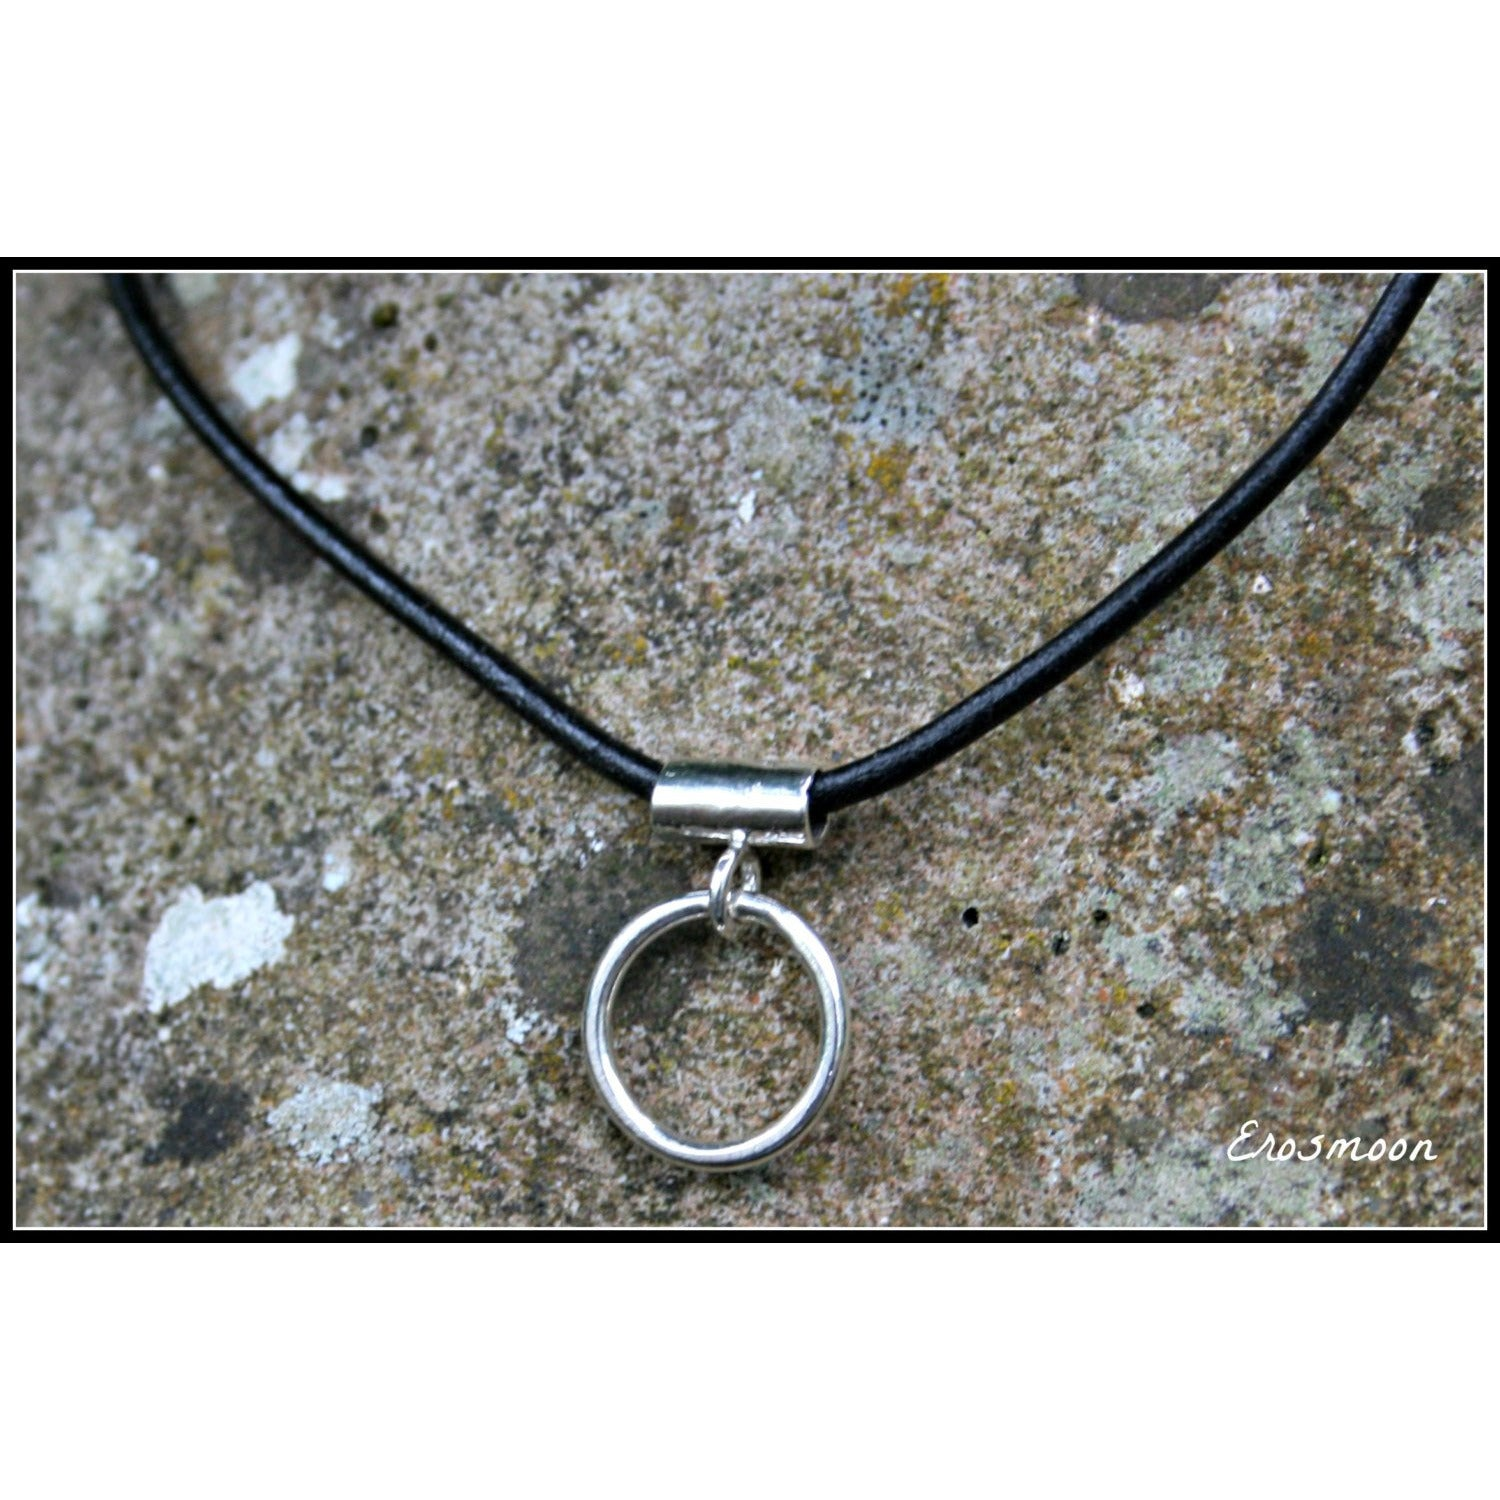 Very Discrete, Sterling Silver O Ring, Leather Cord - Unisex-Day Collar, Public Collar,  Submissive Necklace